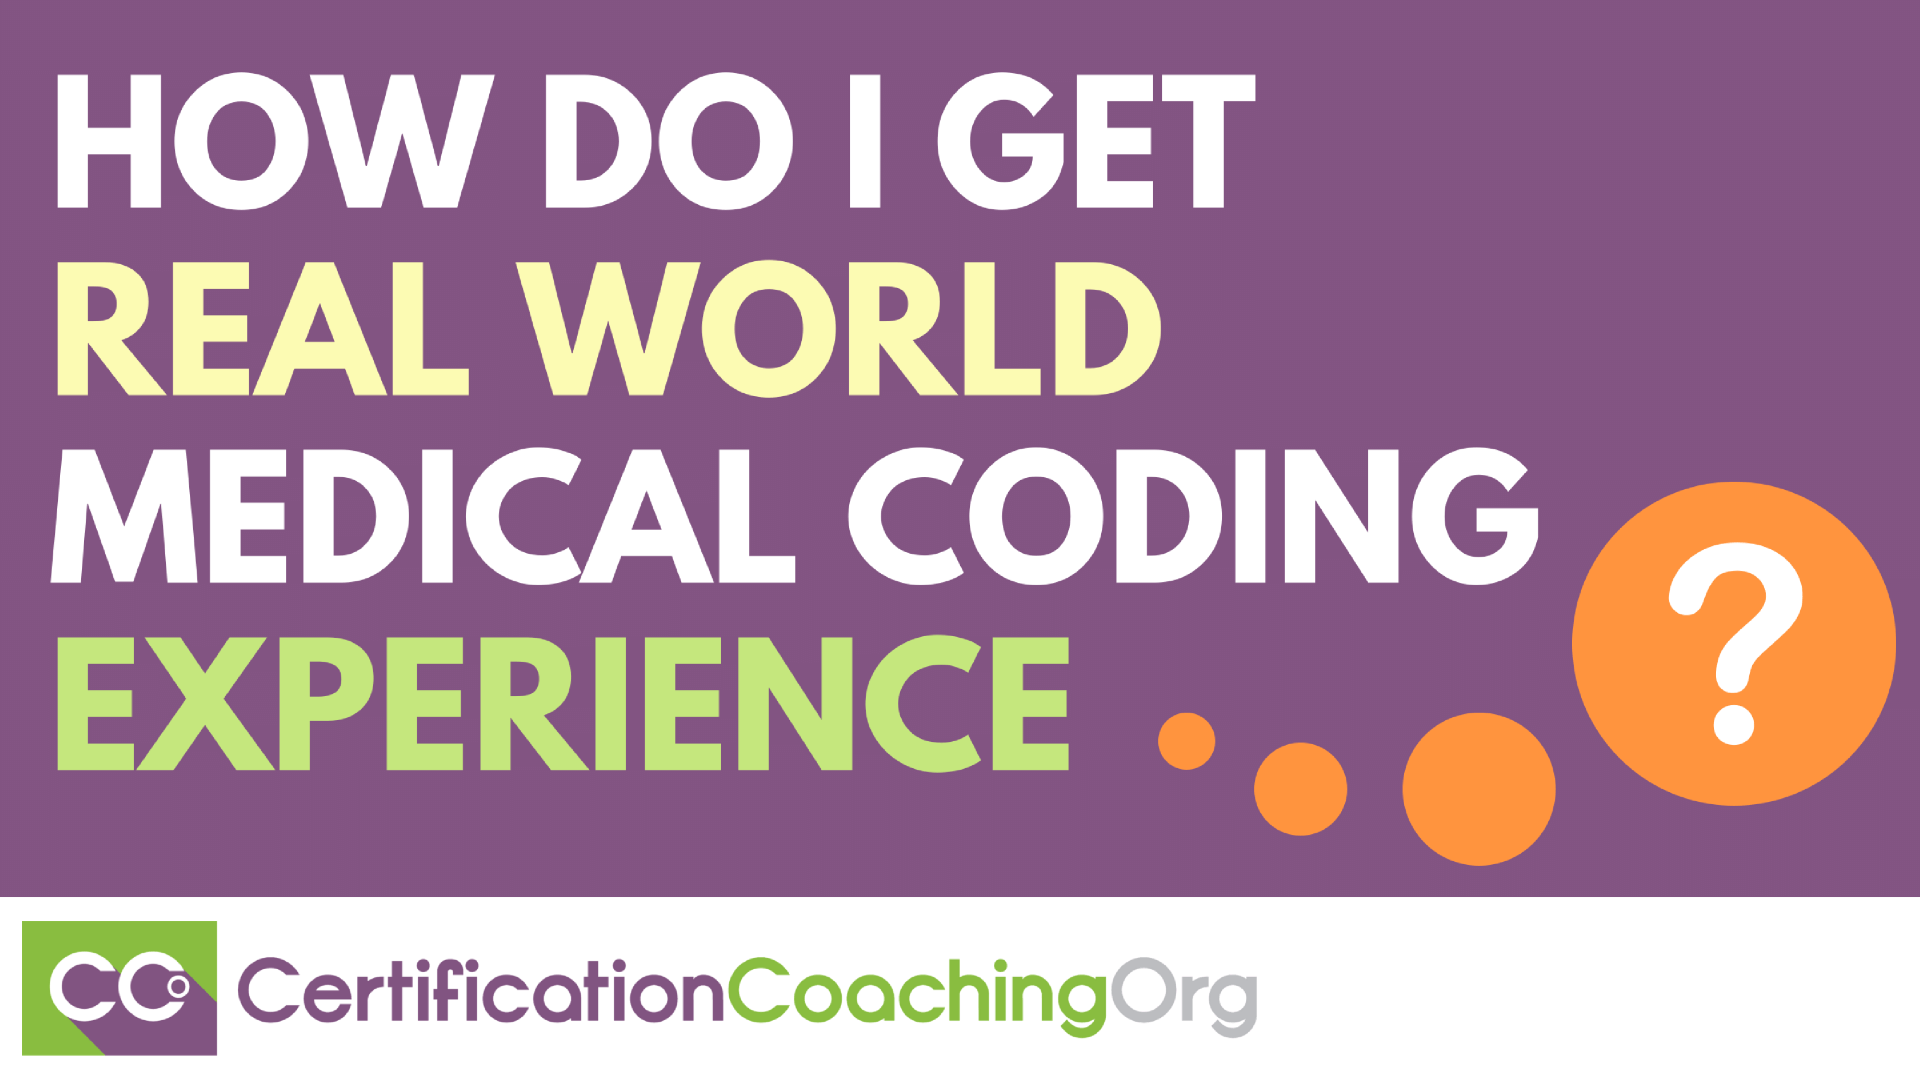 How Do I Get Real World Coding Experience?